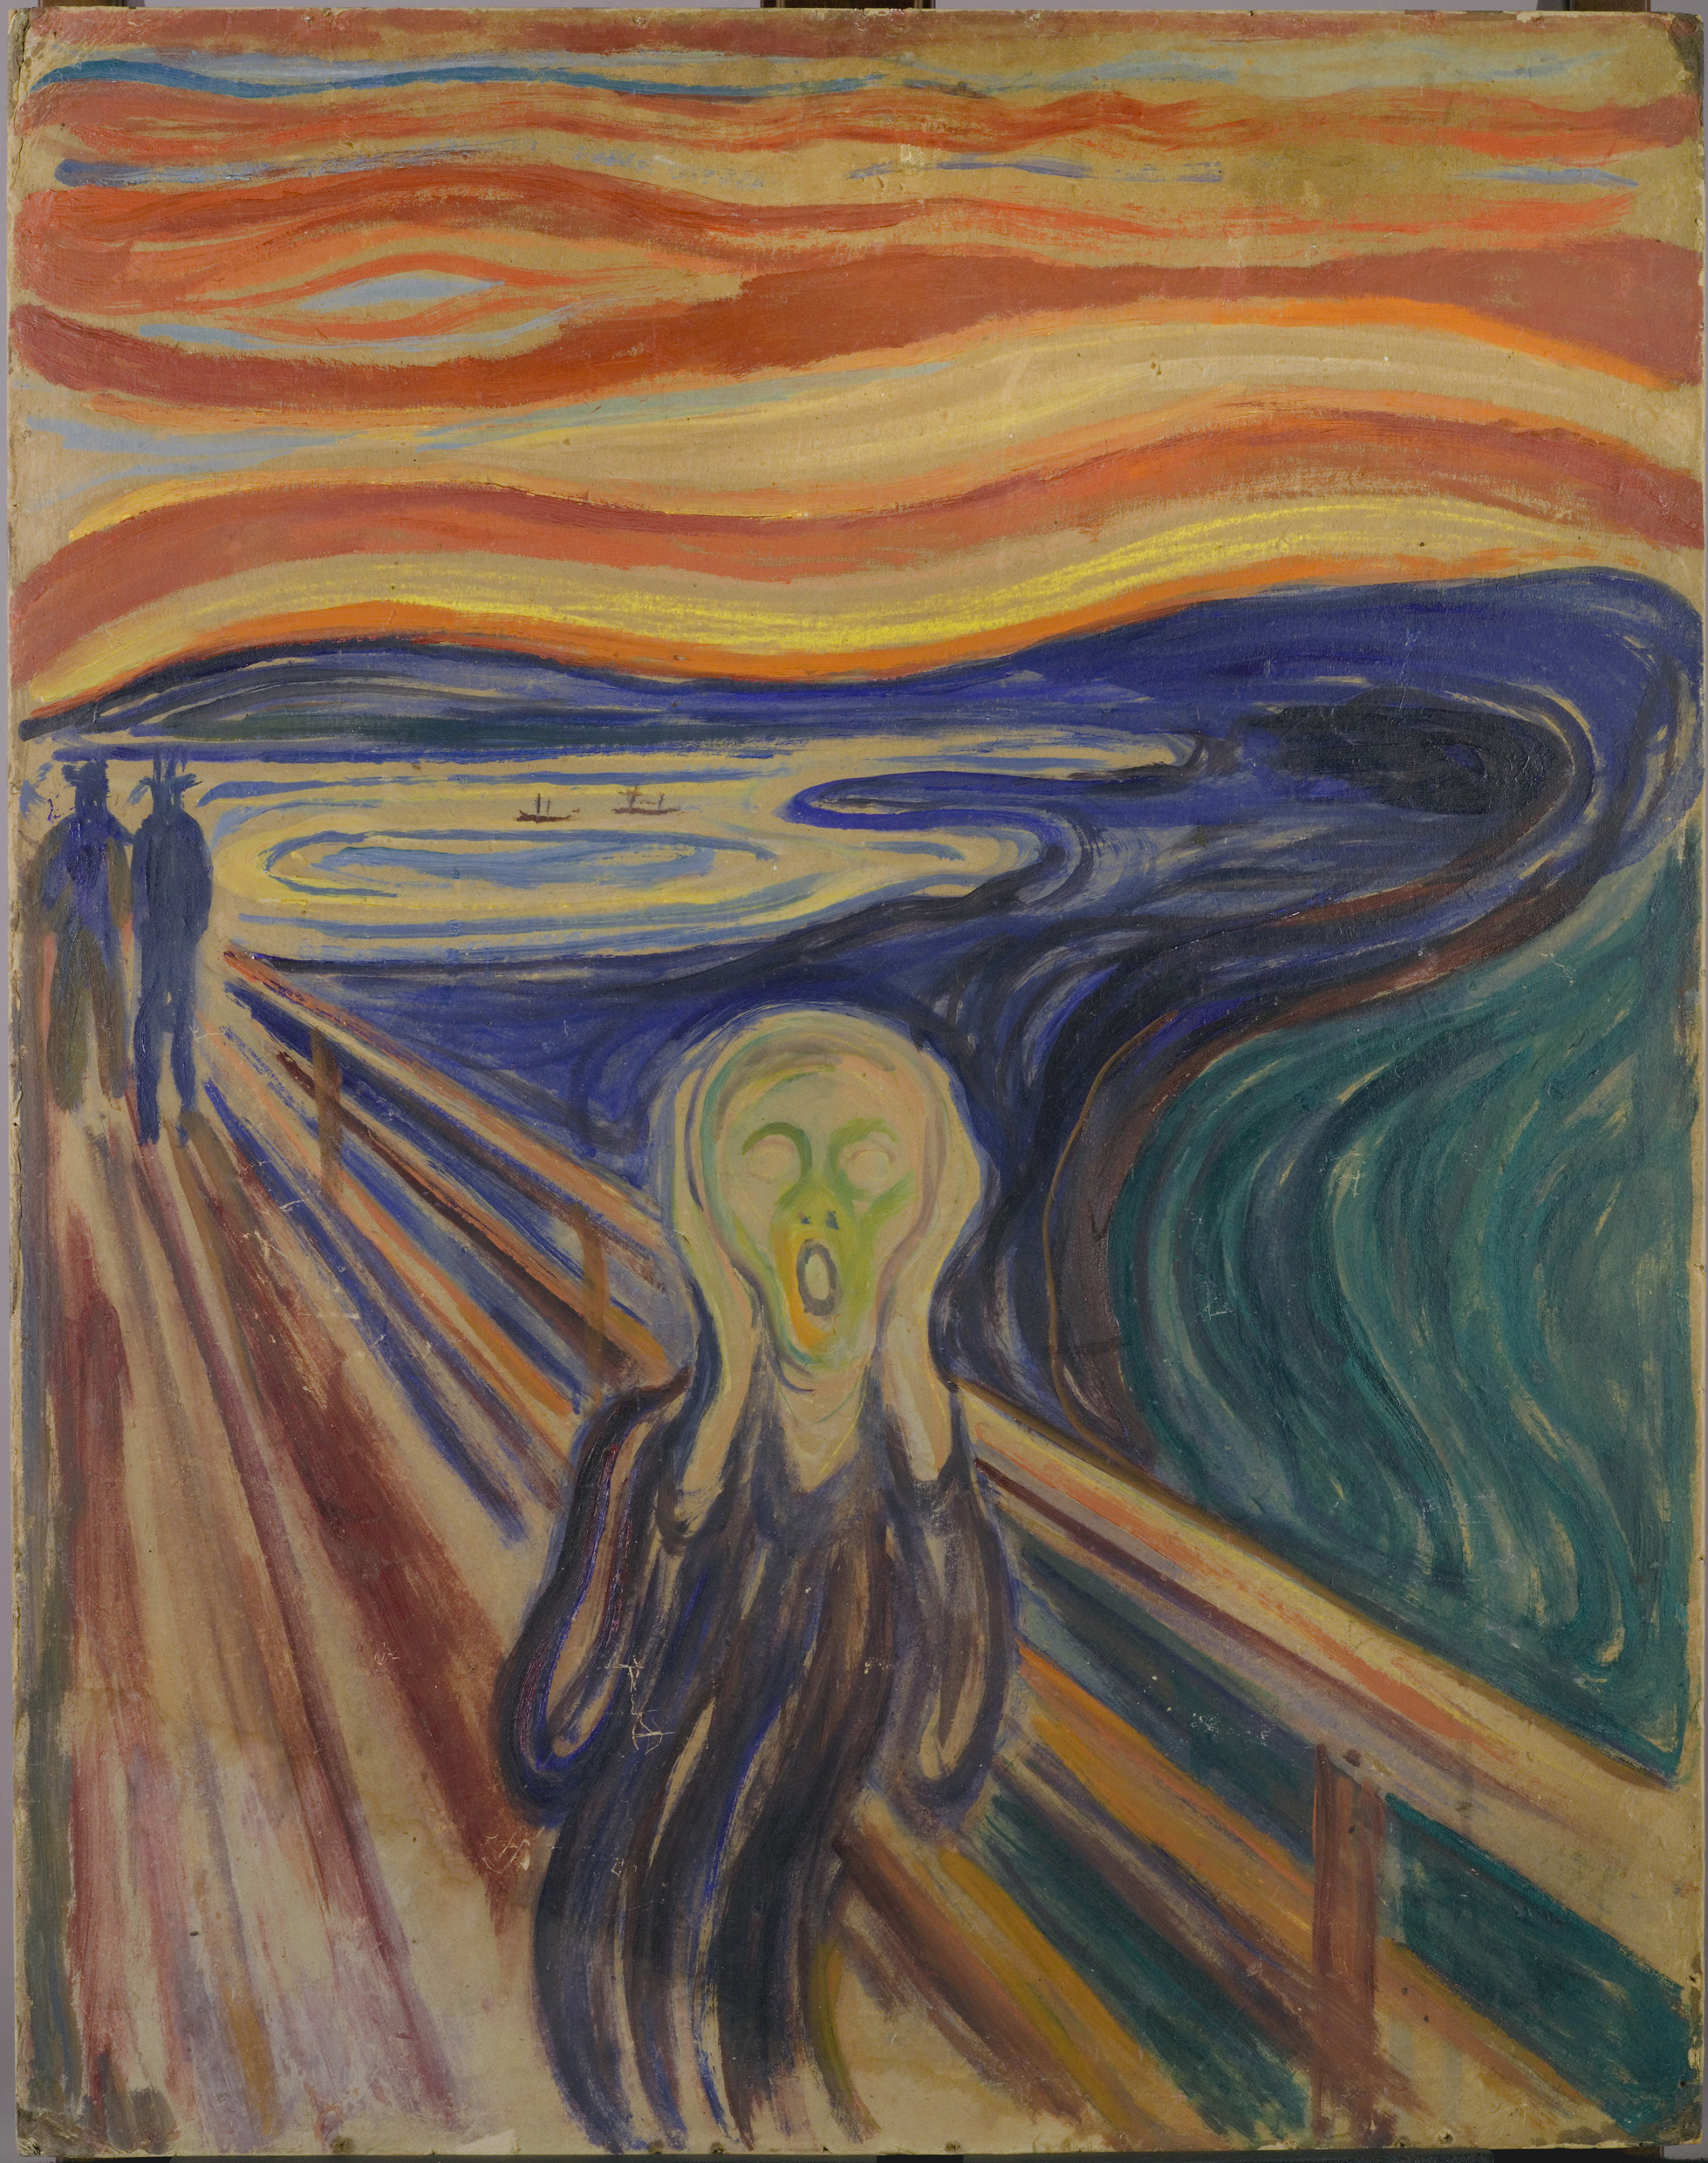 le cri 1910 Les 5 versions de Le Cri dEdvard Munch